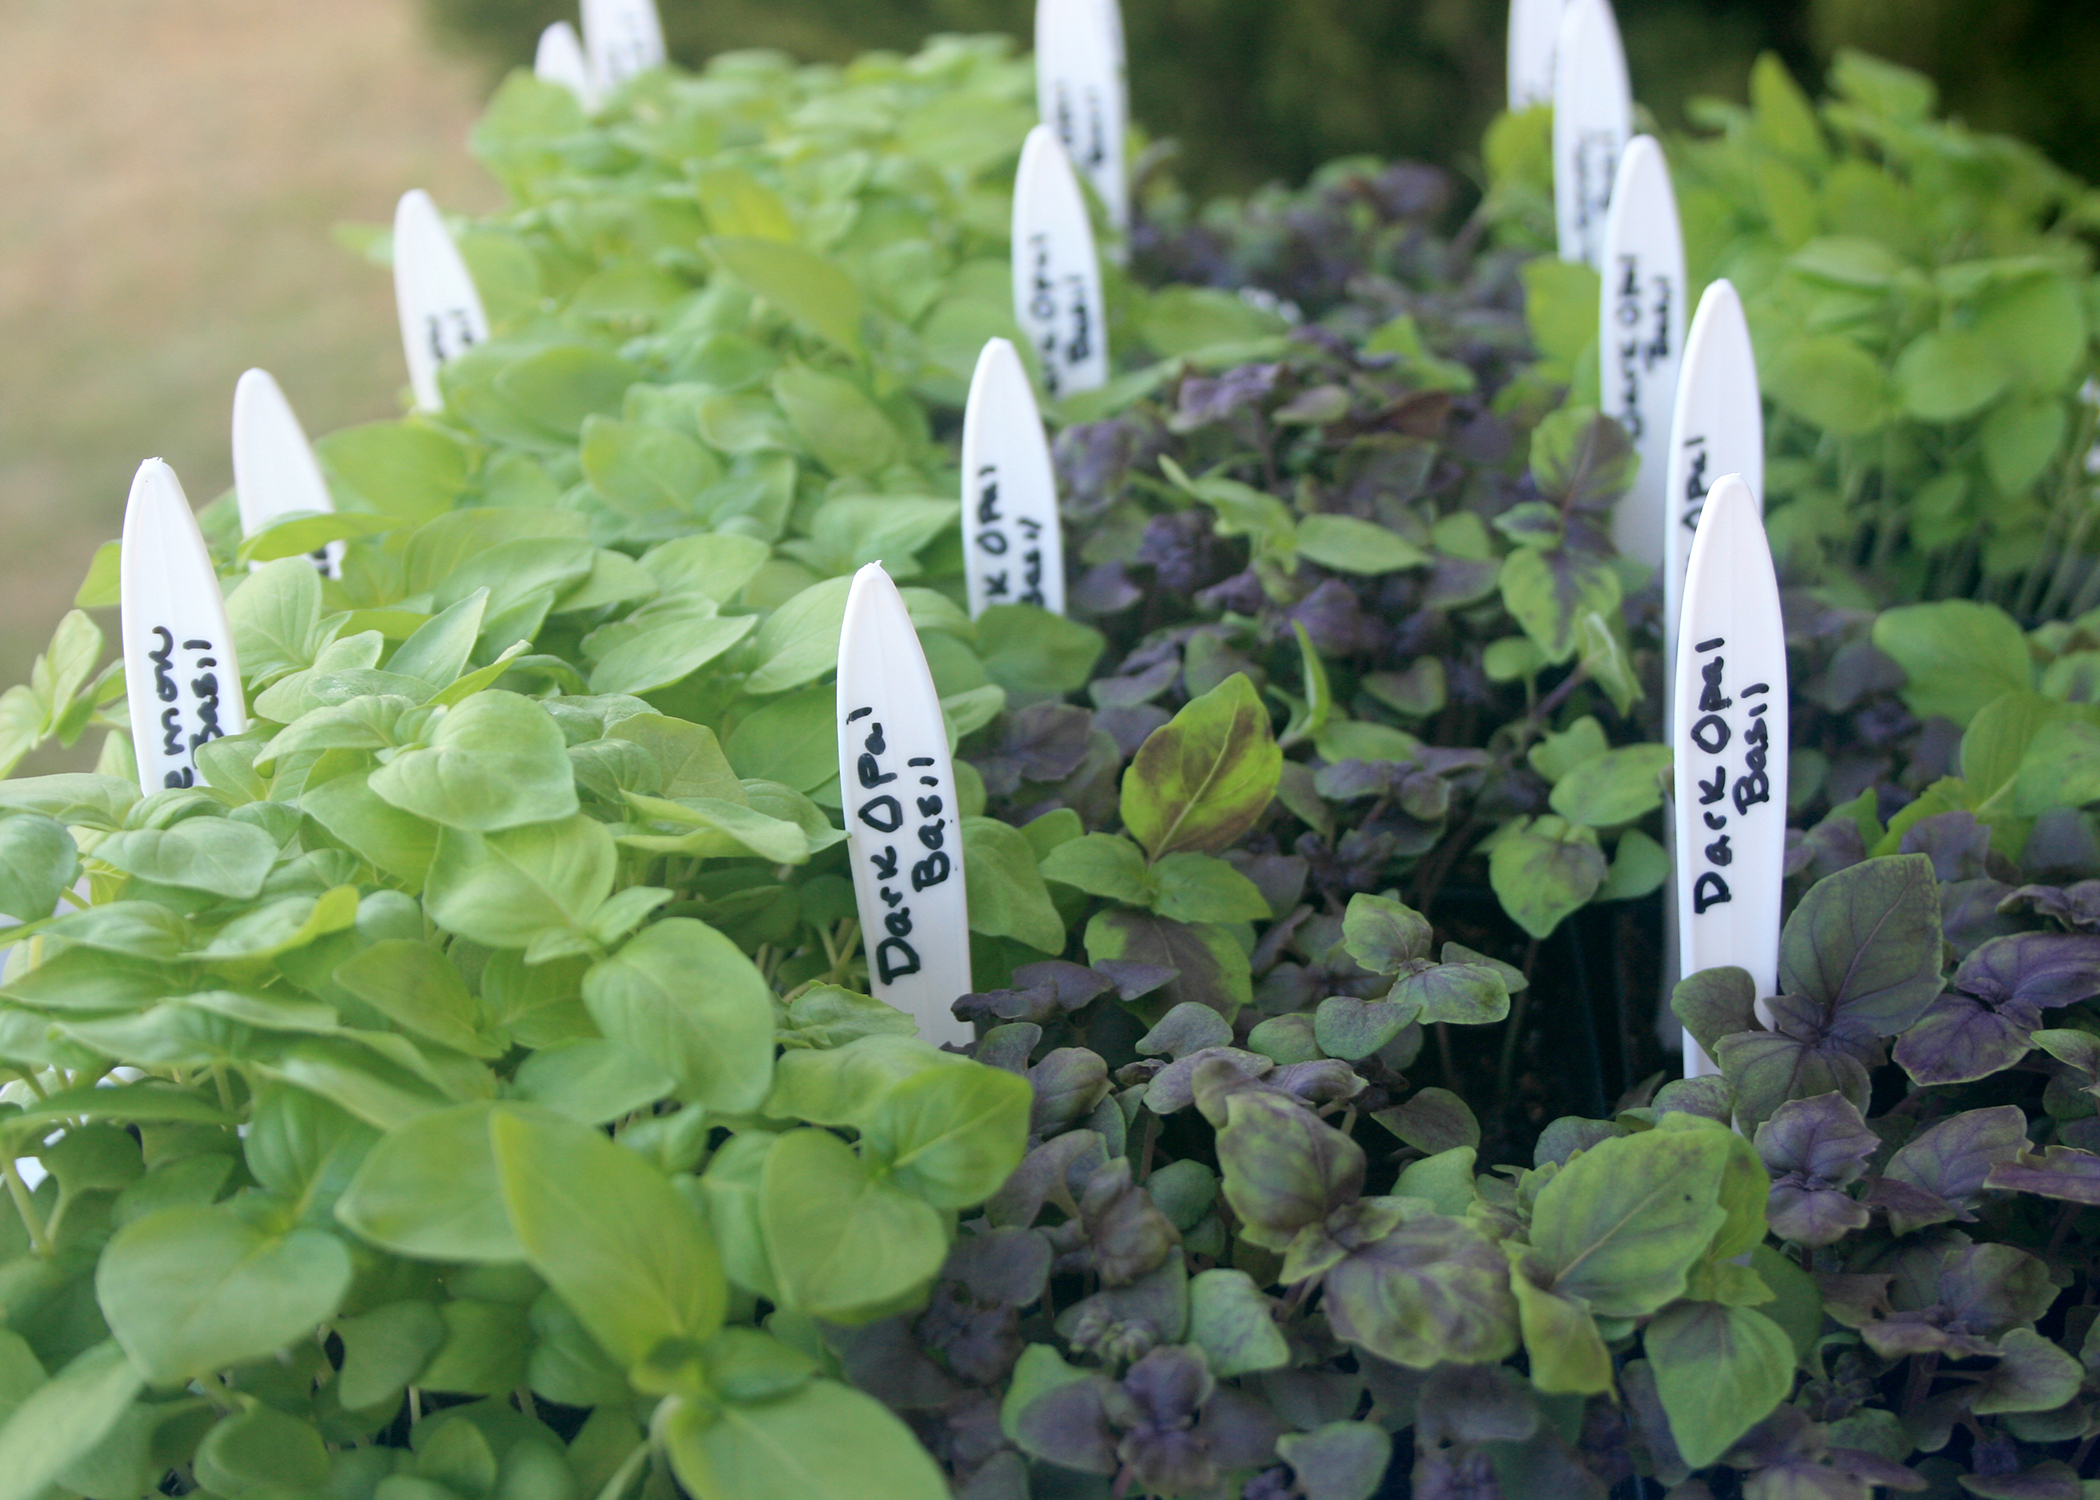 Basil is delicious for summer meals and easy to grow. Its variety of shapes and sizes makes the plant an excellent addition to the perennial garden, shrub border or container garden. (Photo by Gary Bachman/MSU Extension Service)